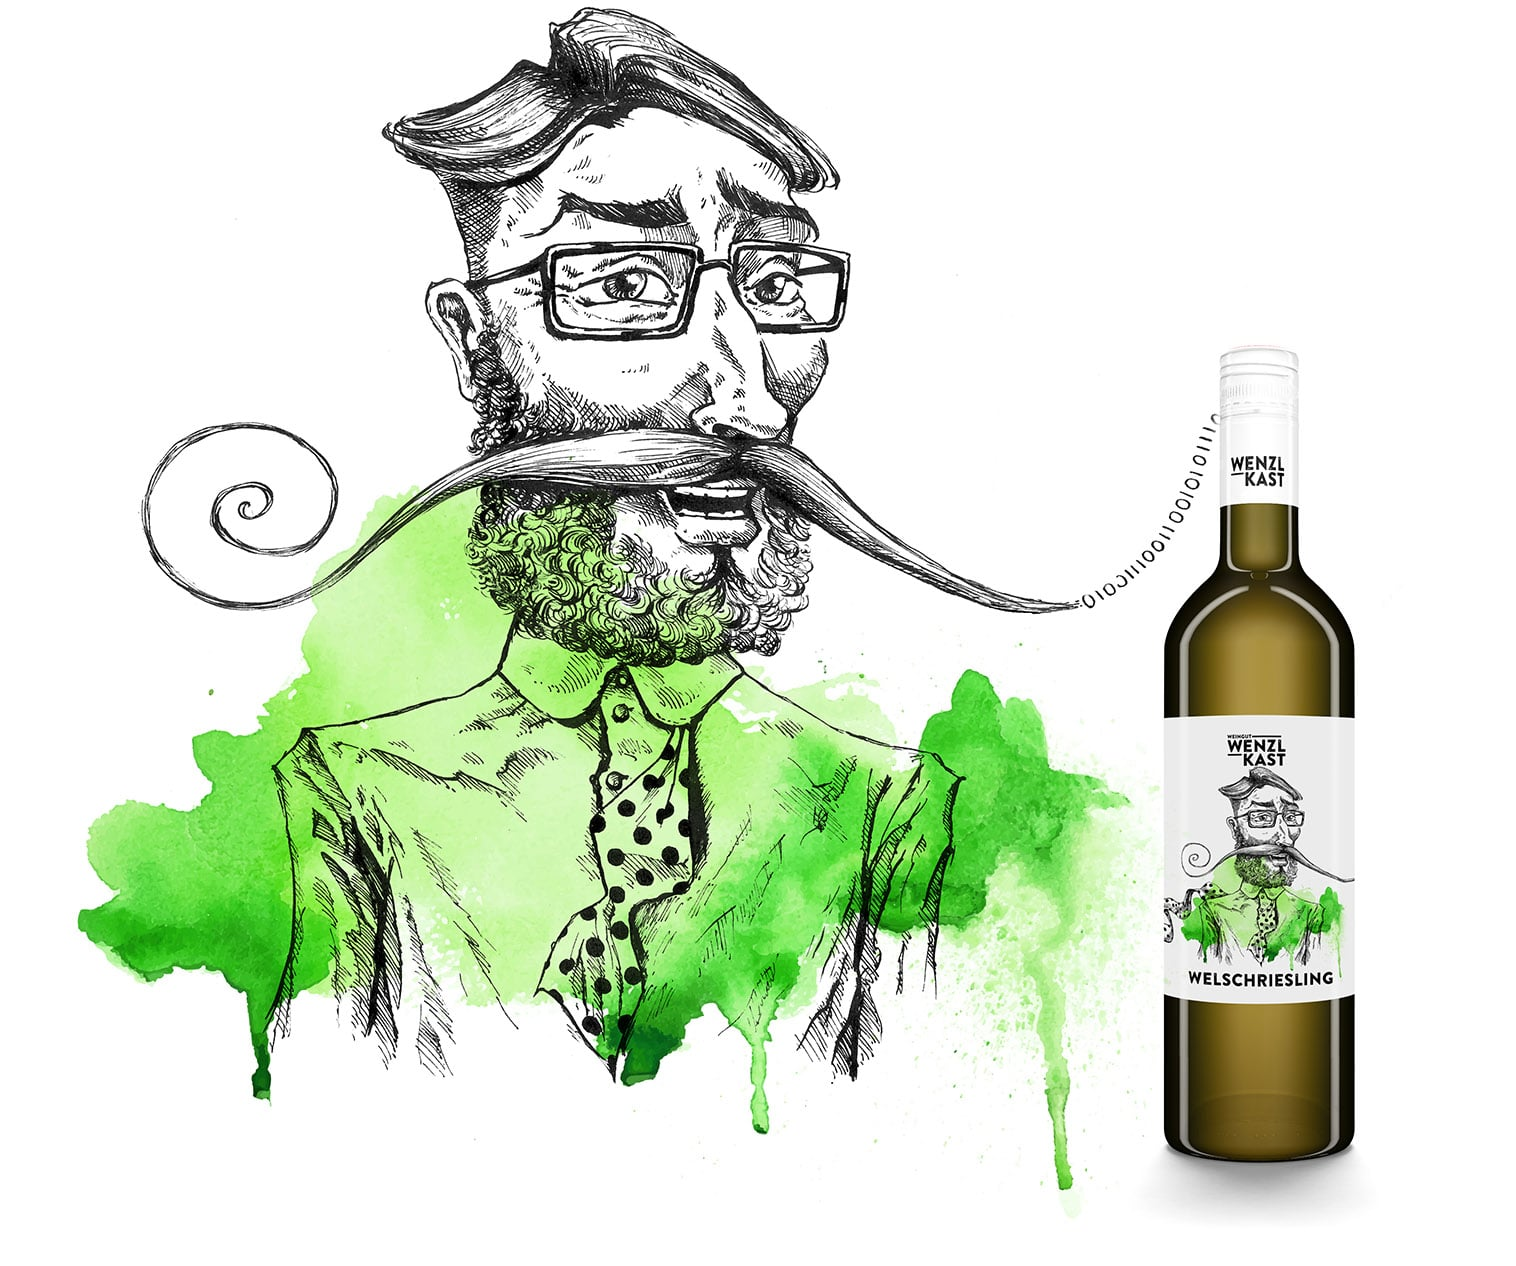 Weingut Redesign by Johnny Be Good